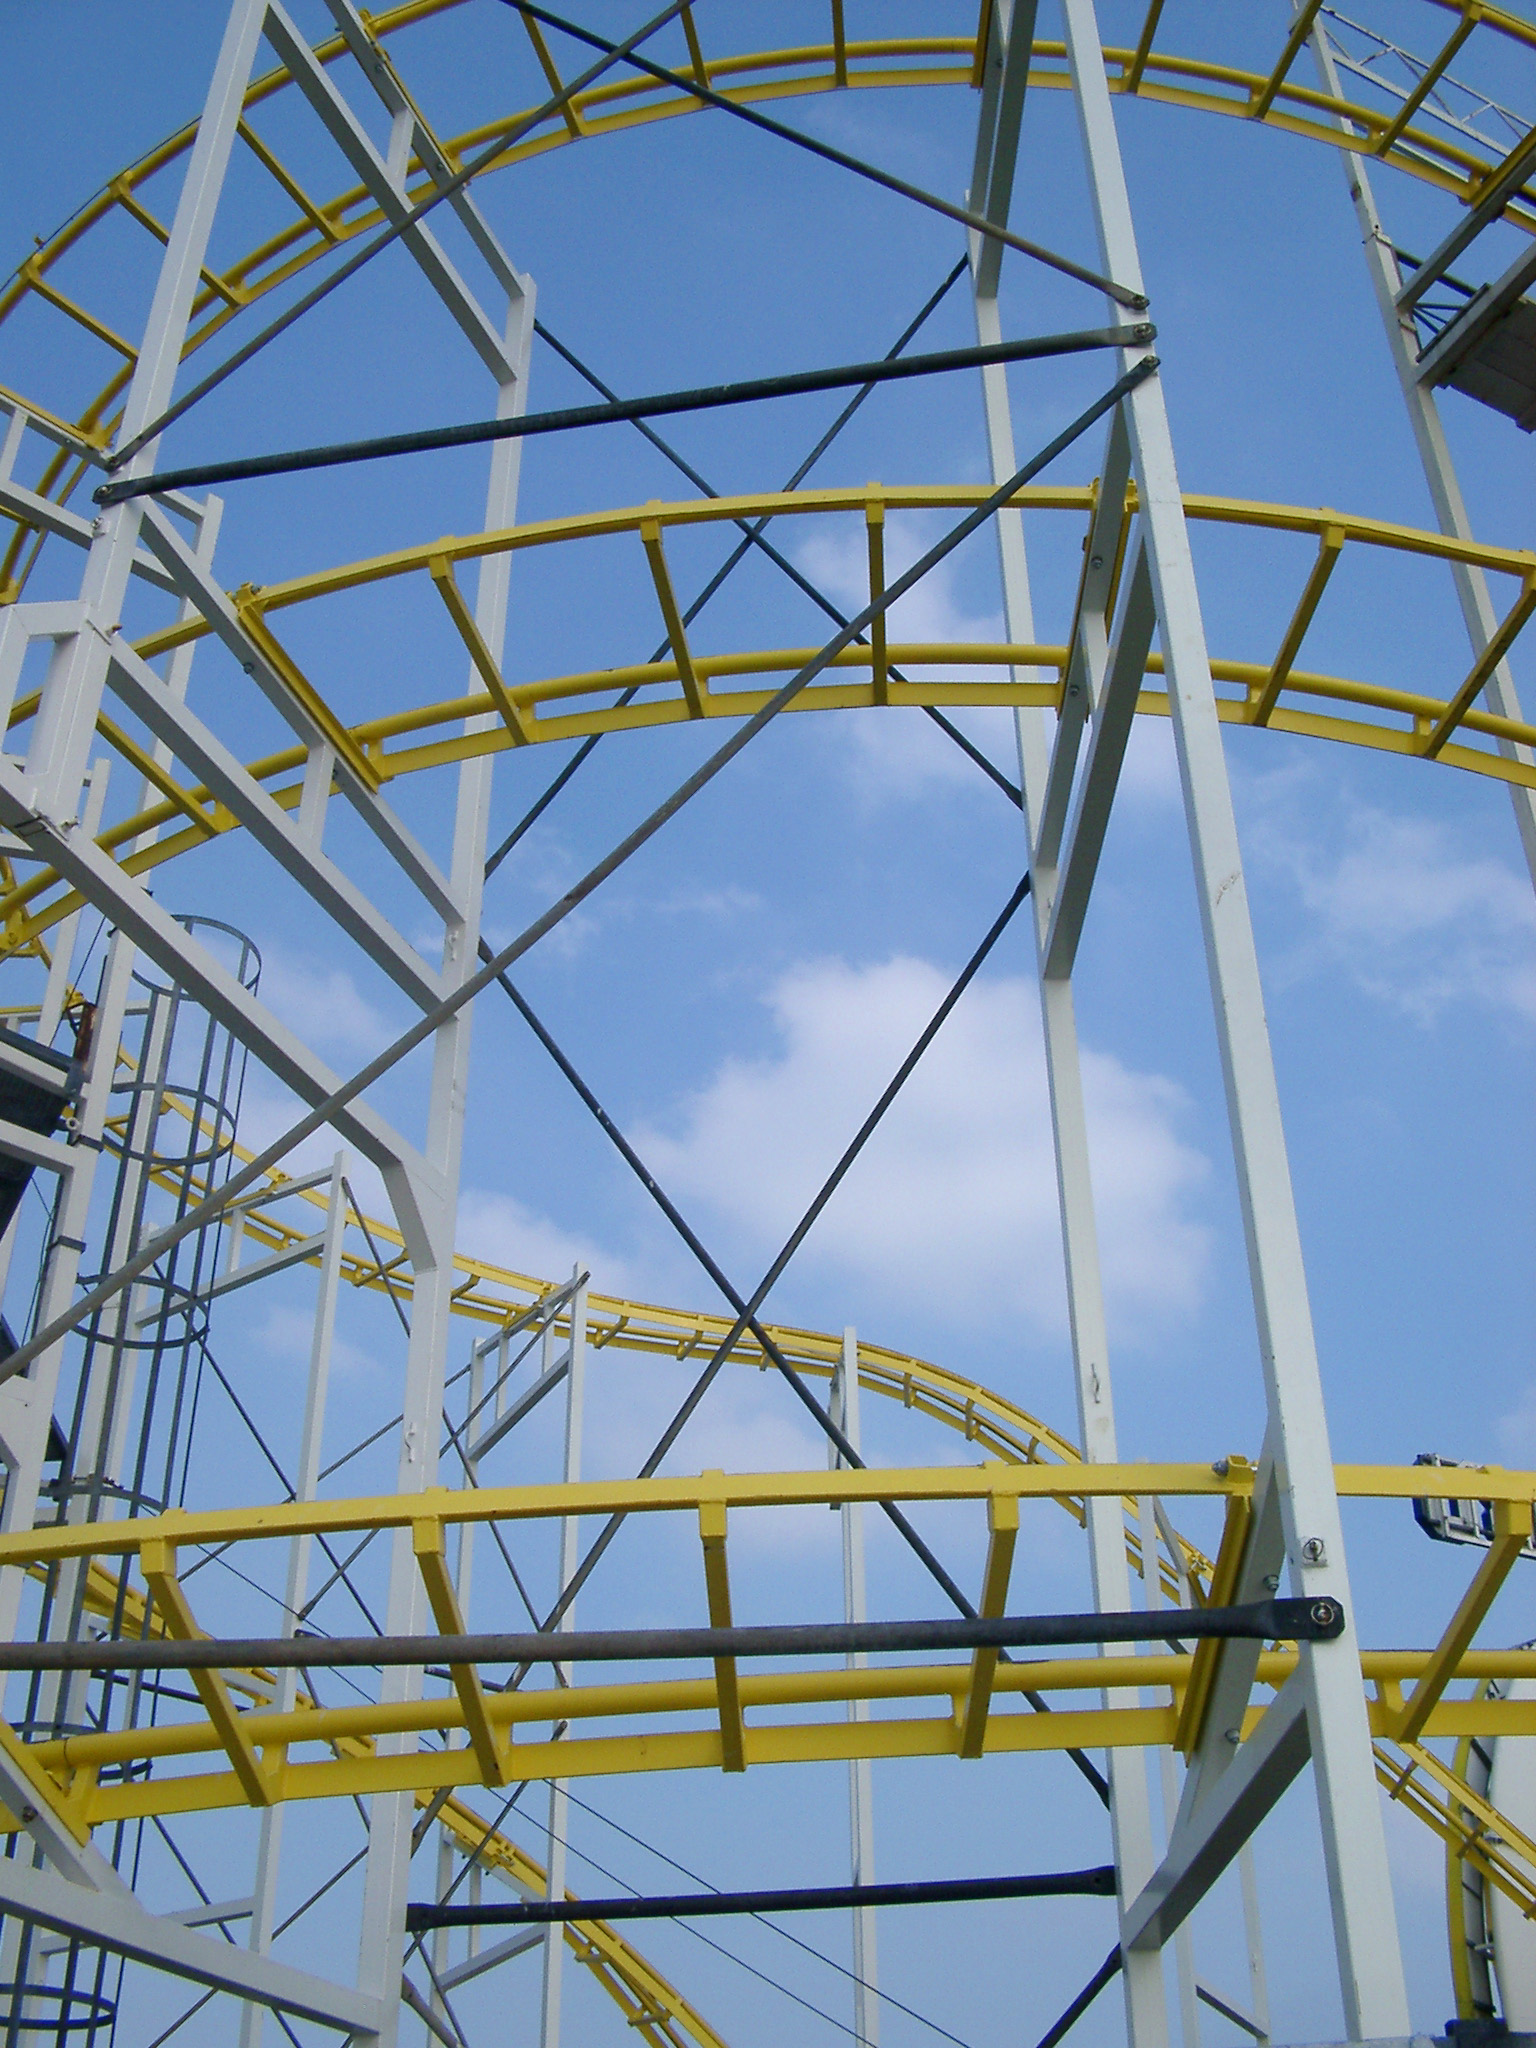 Details of the metal framework of a roller coaster ride at an amusement park against a sunny blue sky